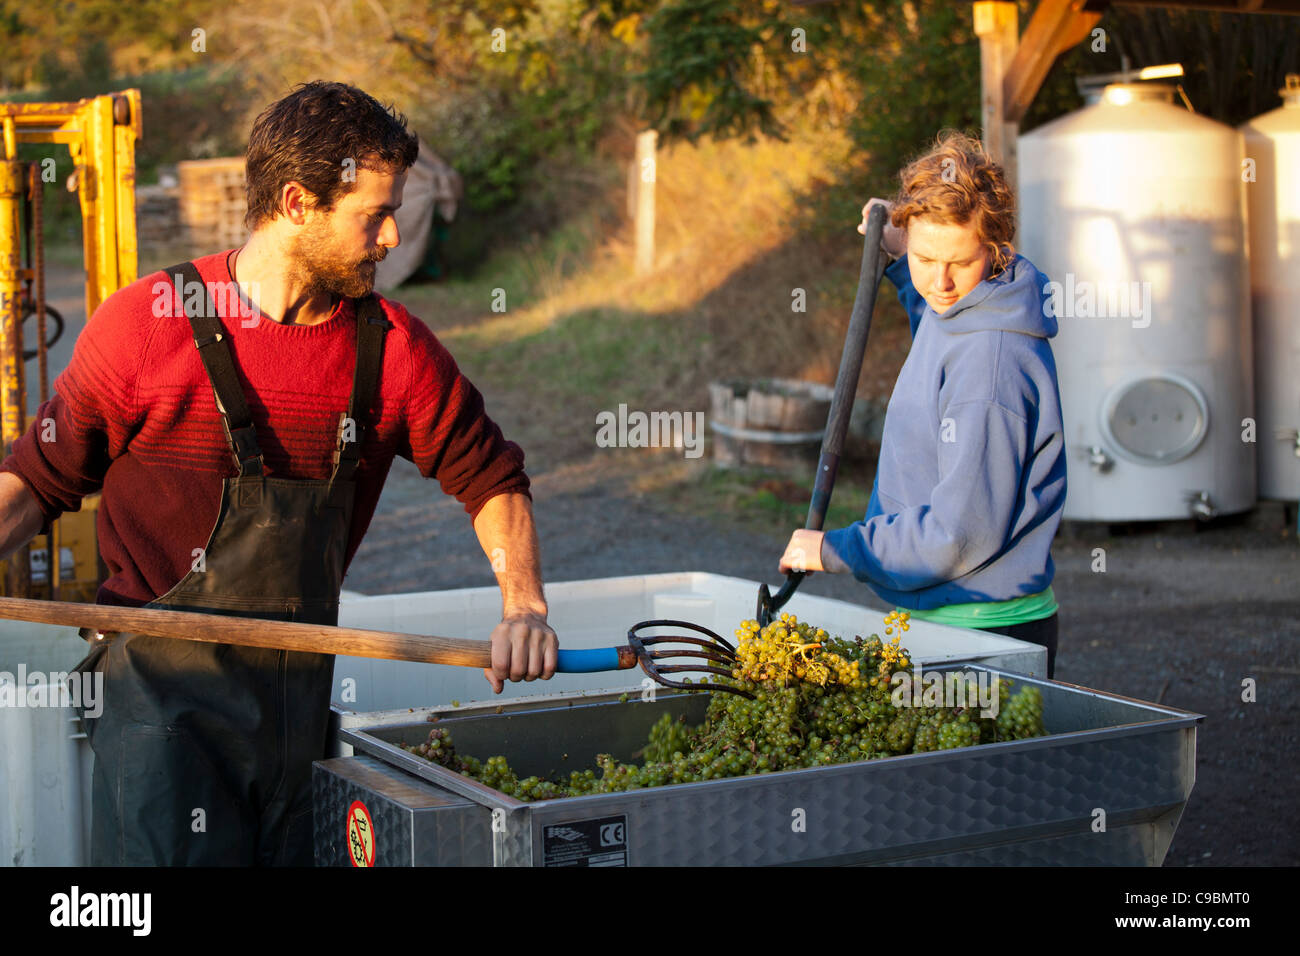 Placing Madeleine Angevine grapes in crusher, first step in creating wine. - Stock Image